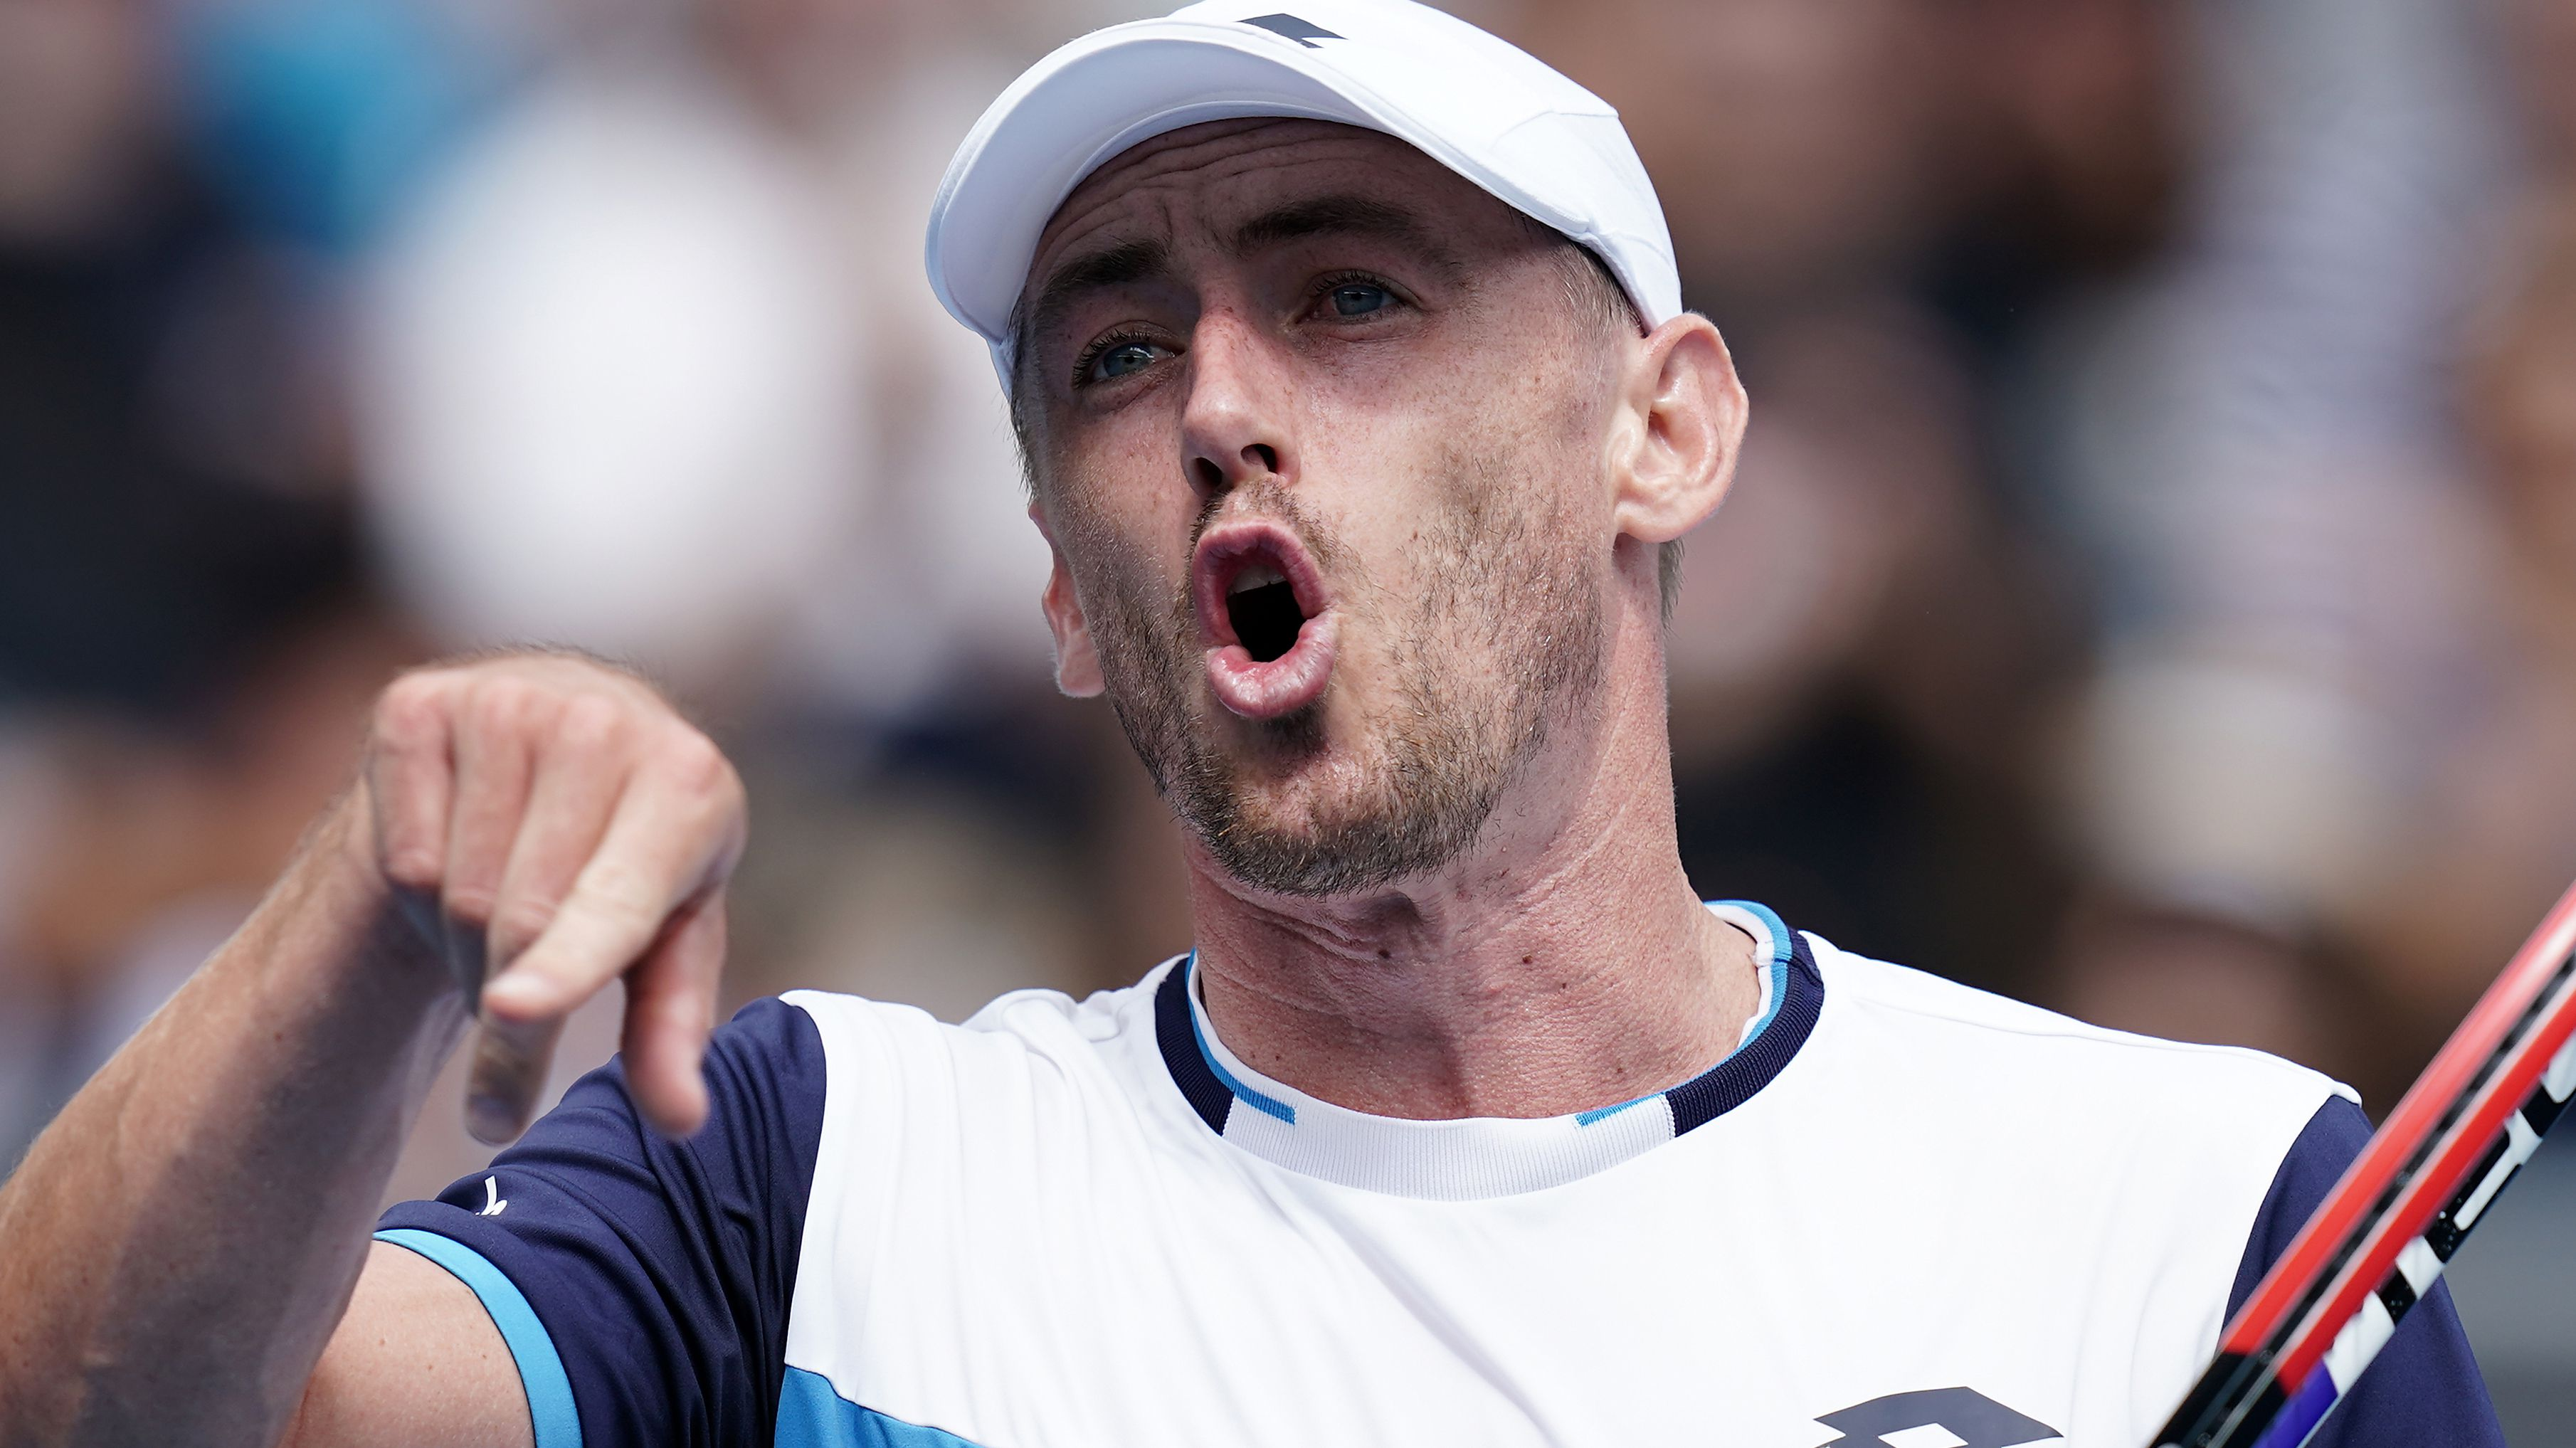 John Millman slams 'absolutely ridiculous' attacks on lineswoman hit by Novak Djokovic at US Open